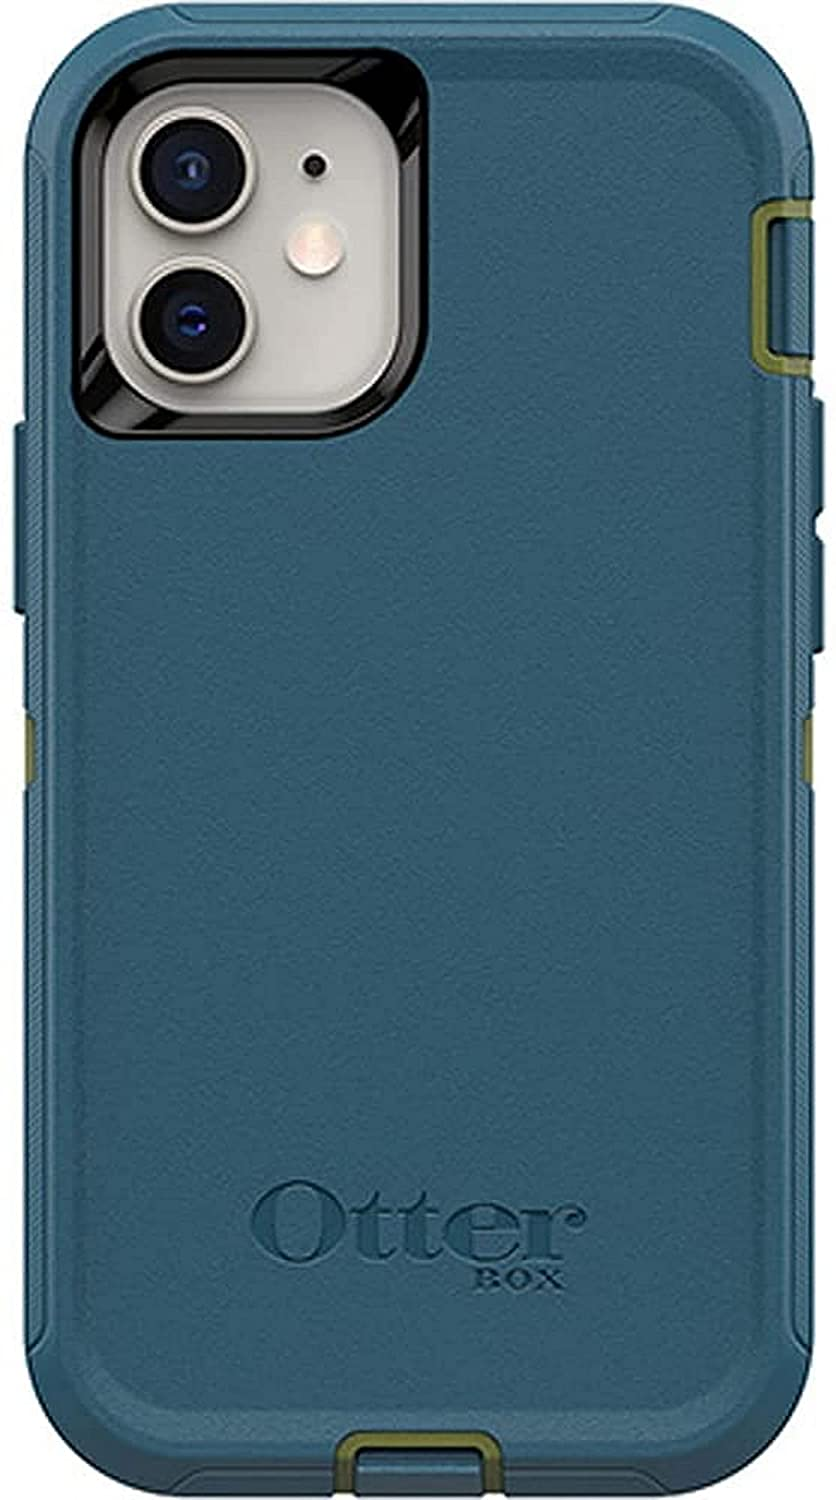 OtterBox Defender Series SCREENLESS Edition Case SCREENLESS Edition for iPhone 12 Mini - Case Only - Non-Retail Packaging - Teal ME About IT (Guacamole/Corsair)